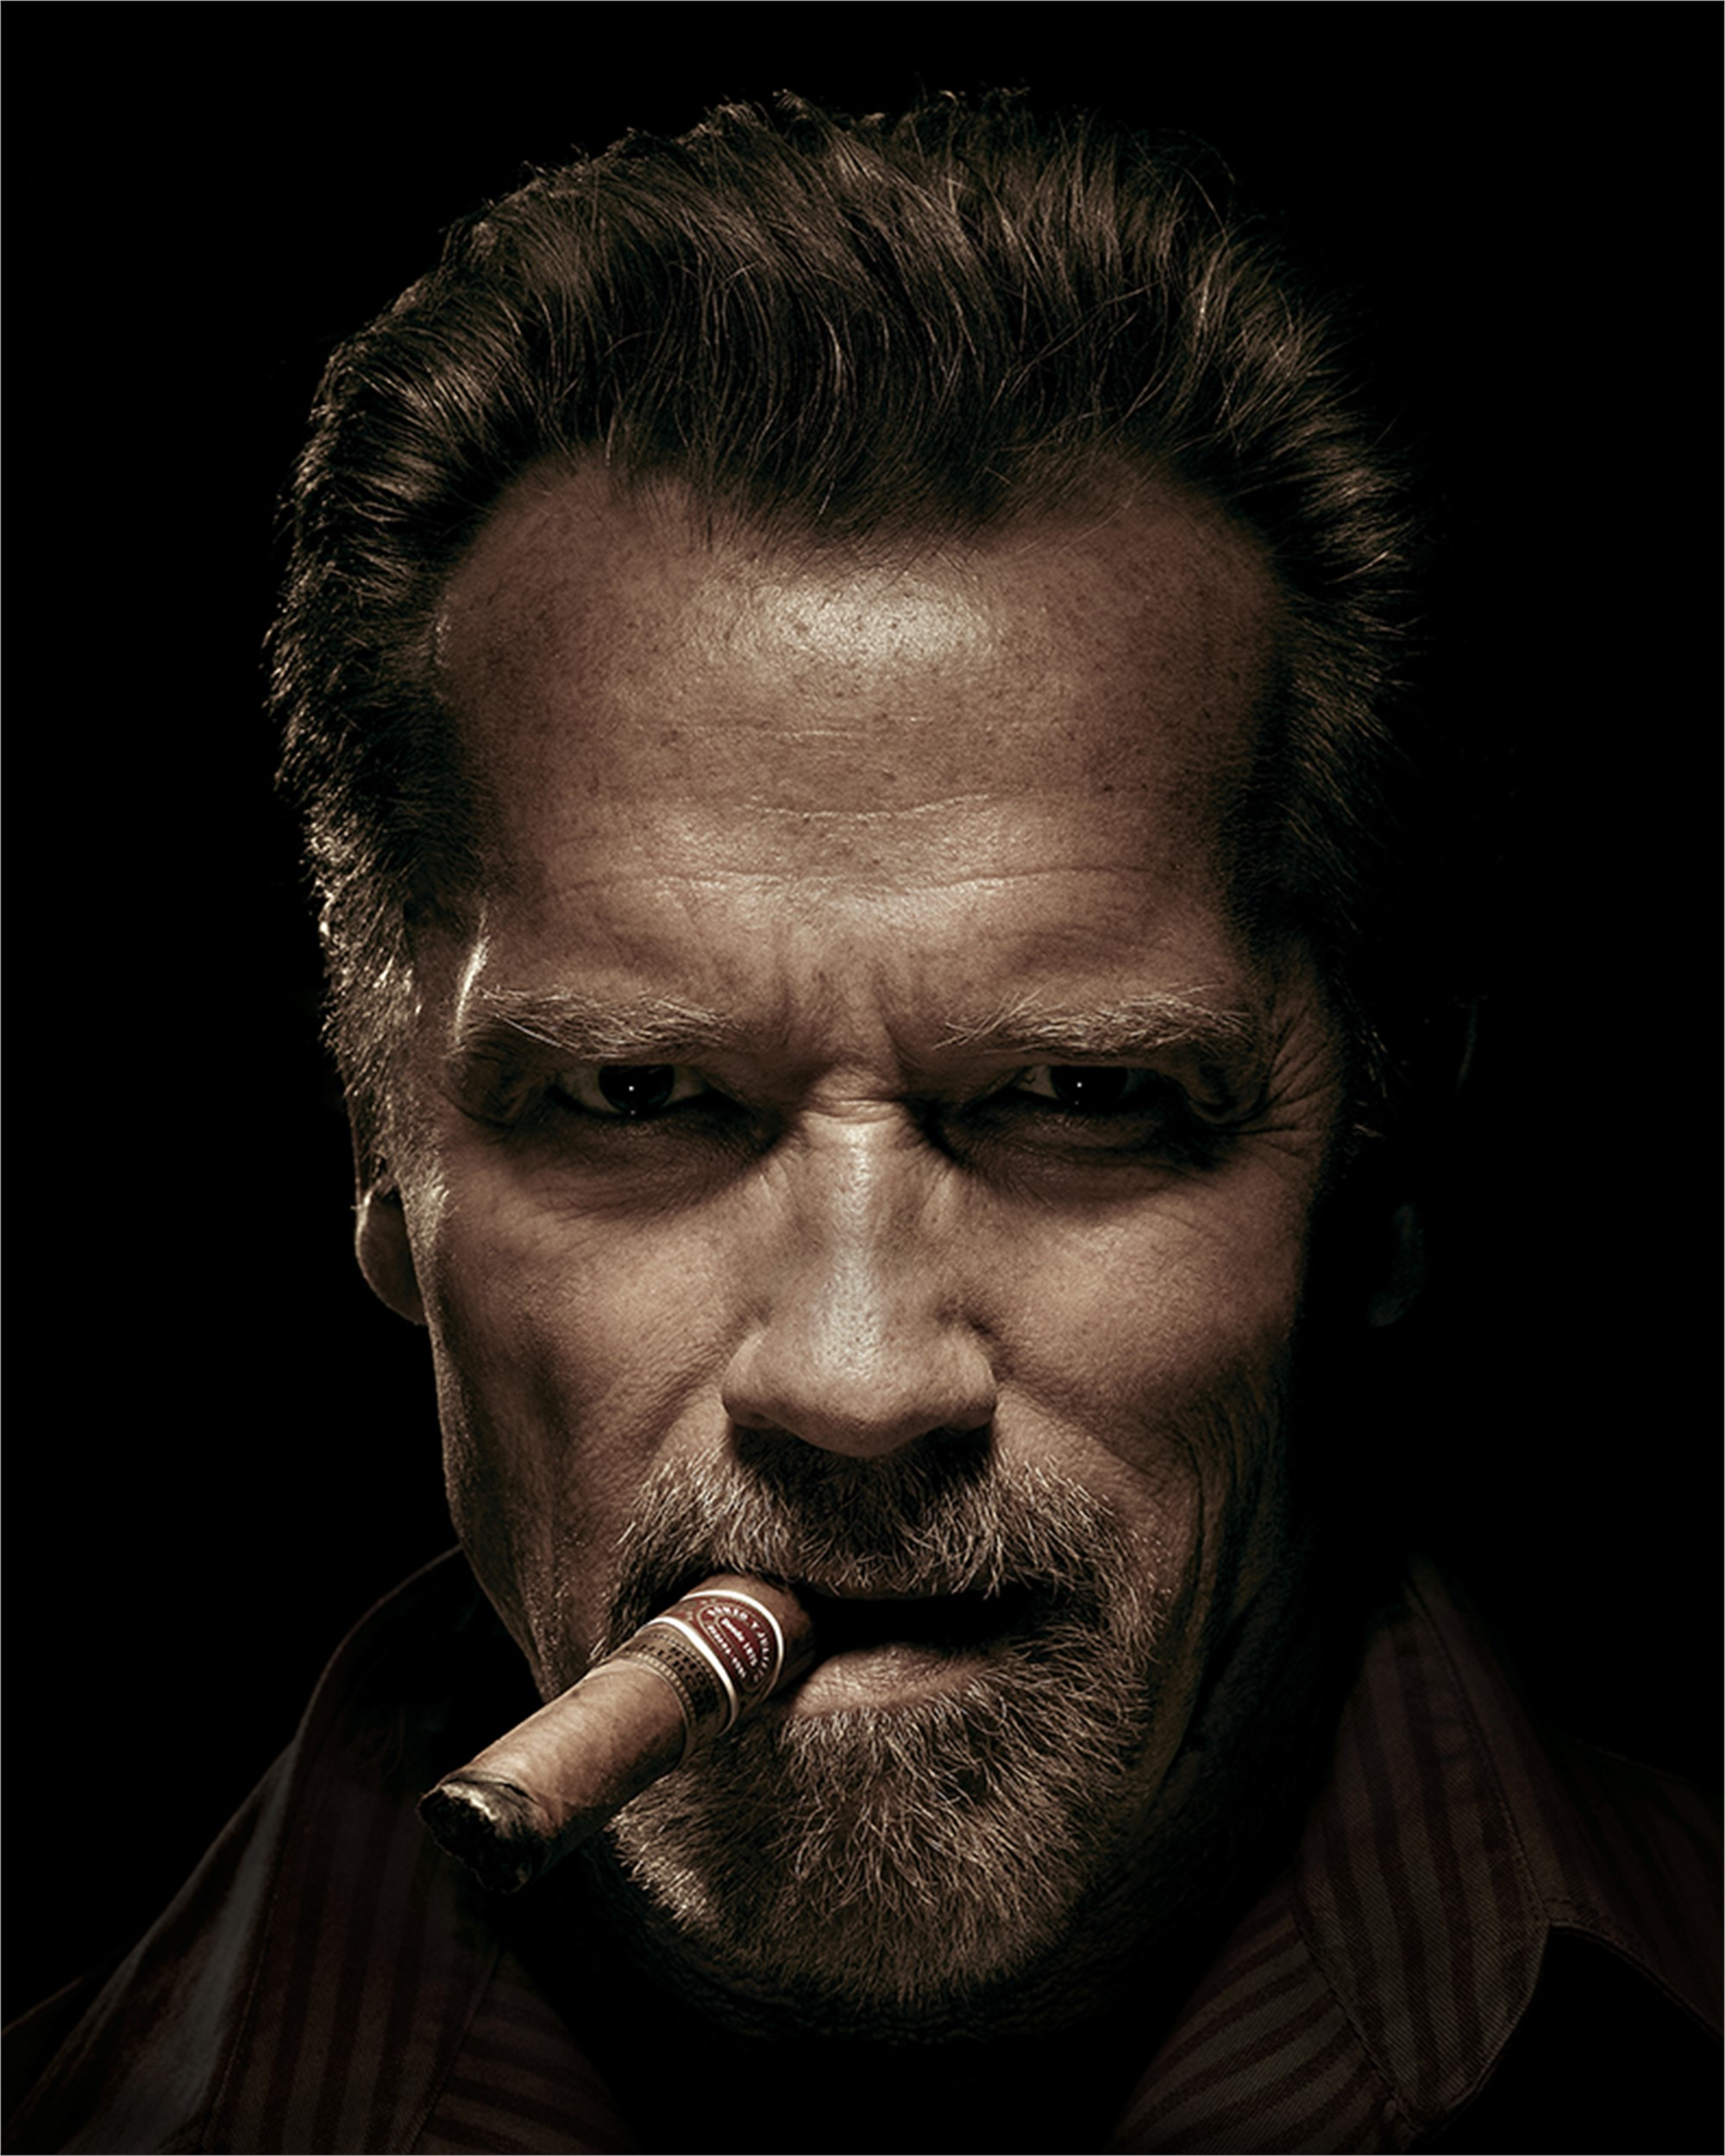 Arnold Schwarzenegger presented a cigar to an Austrian who was dying of cancer January 22, 2016 32